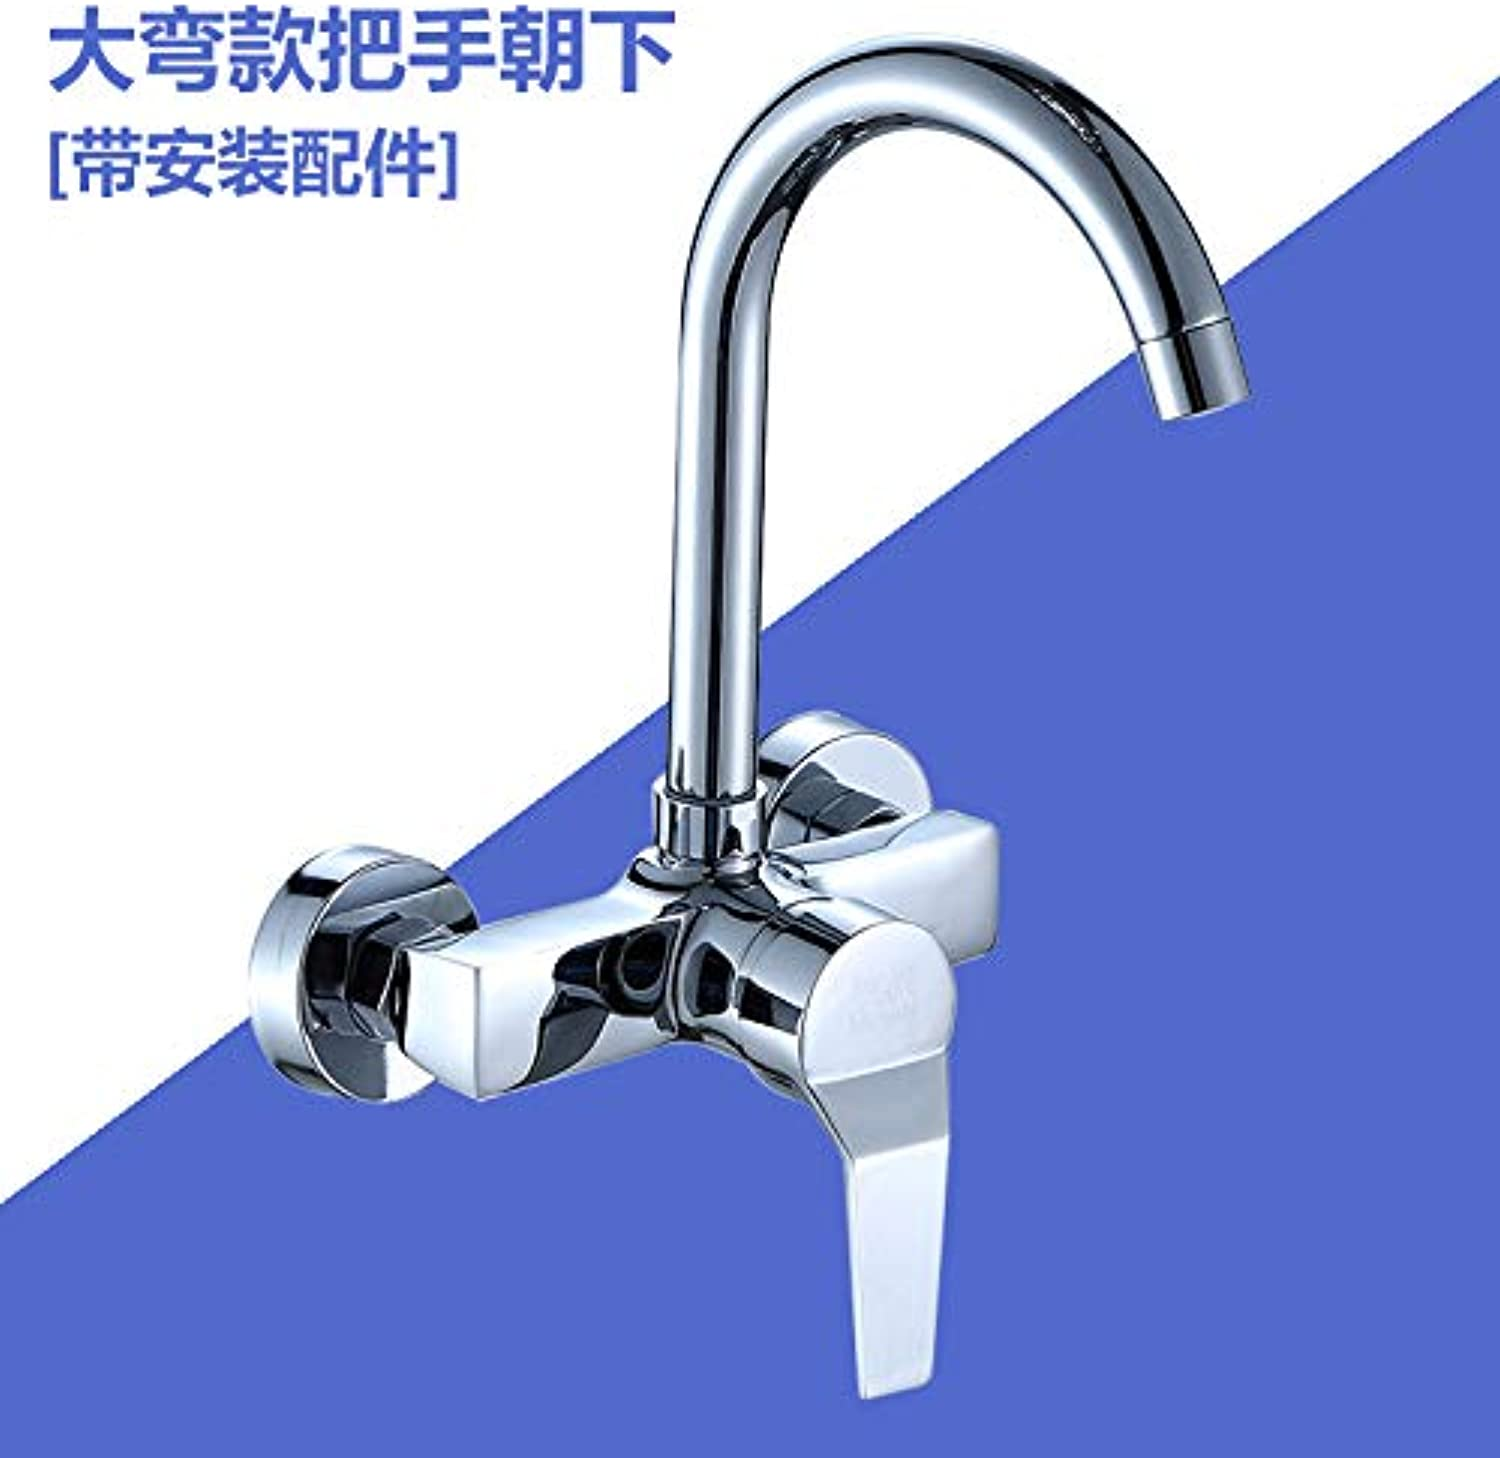 JWLT faucets Wall Kitchen, Vegetable Basin, hot and Cold Water Faucet, All Copper Household Sink, Balcony, Laundry Pool, Mixing Valve tap,Big Bend (Handle Down)